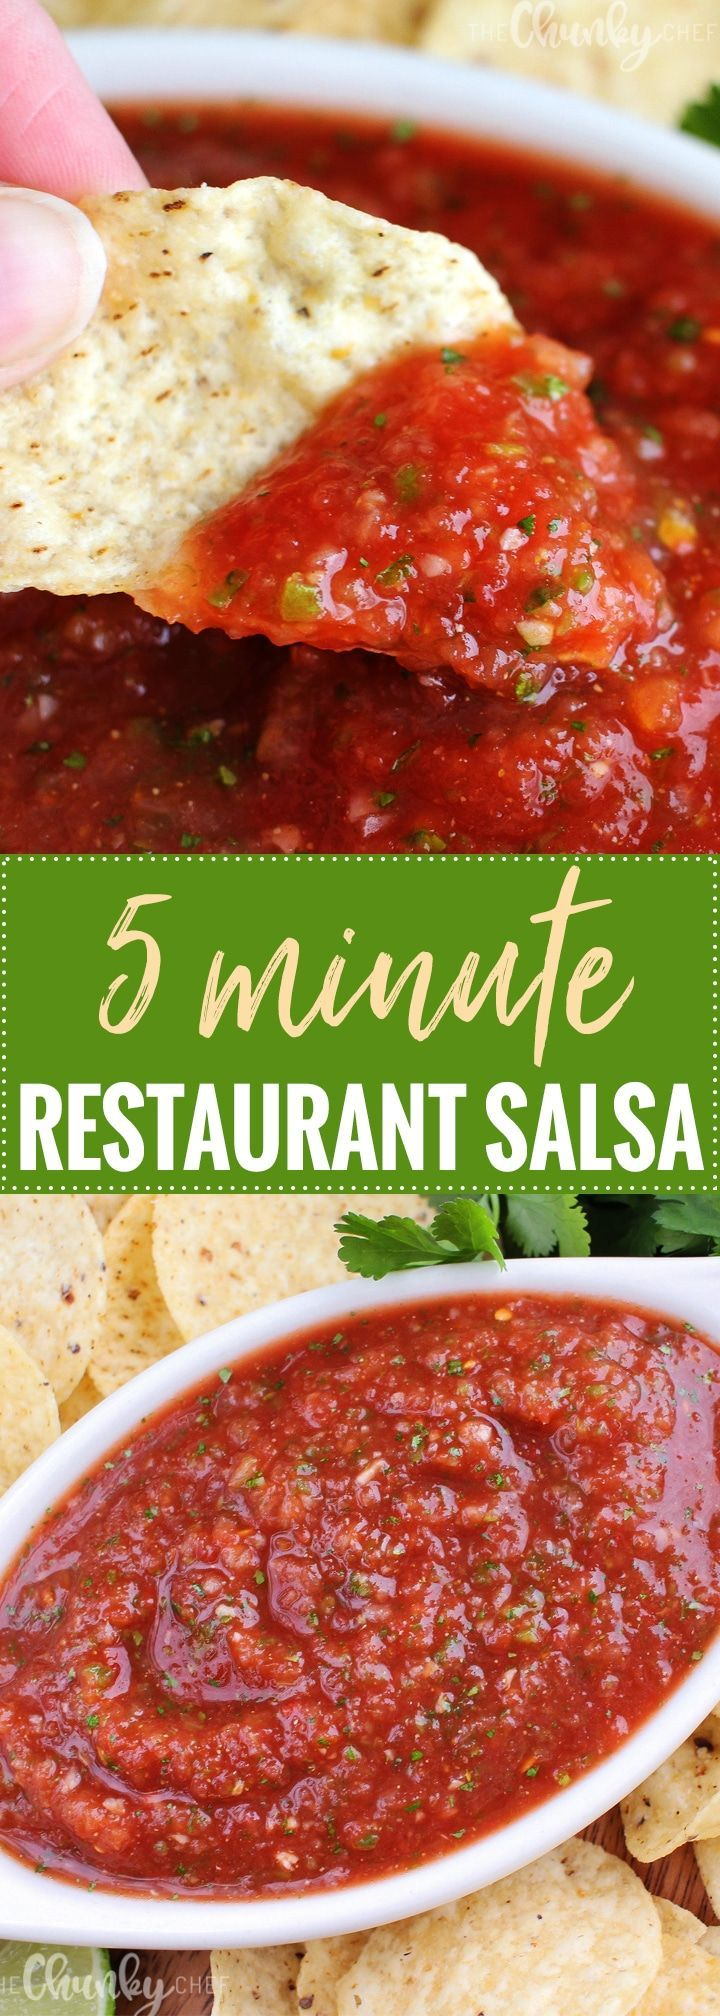 """5 Minute Restaurant Salsa 